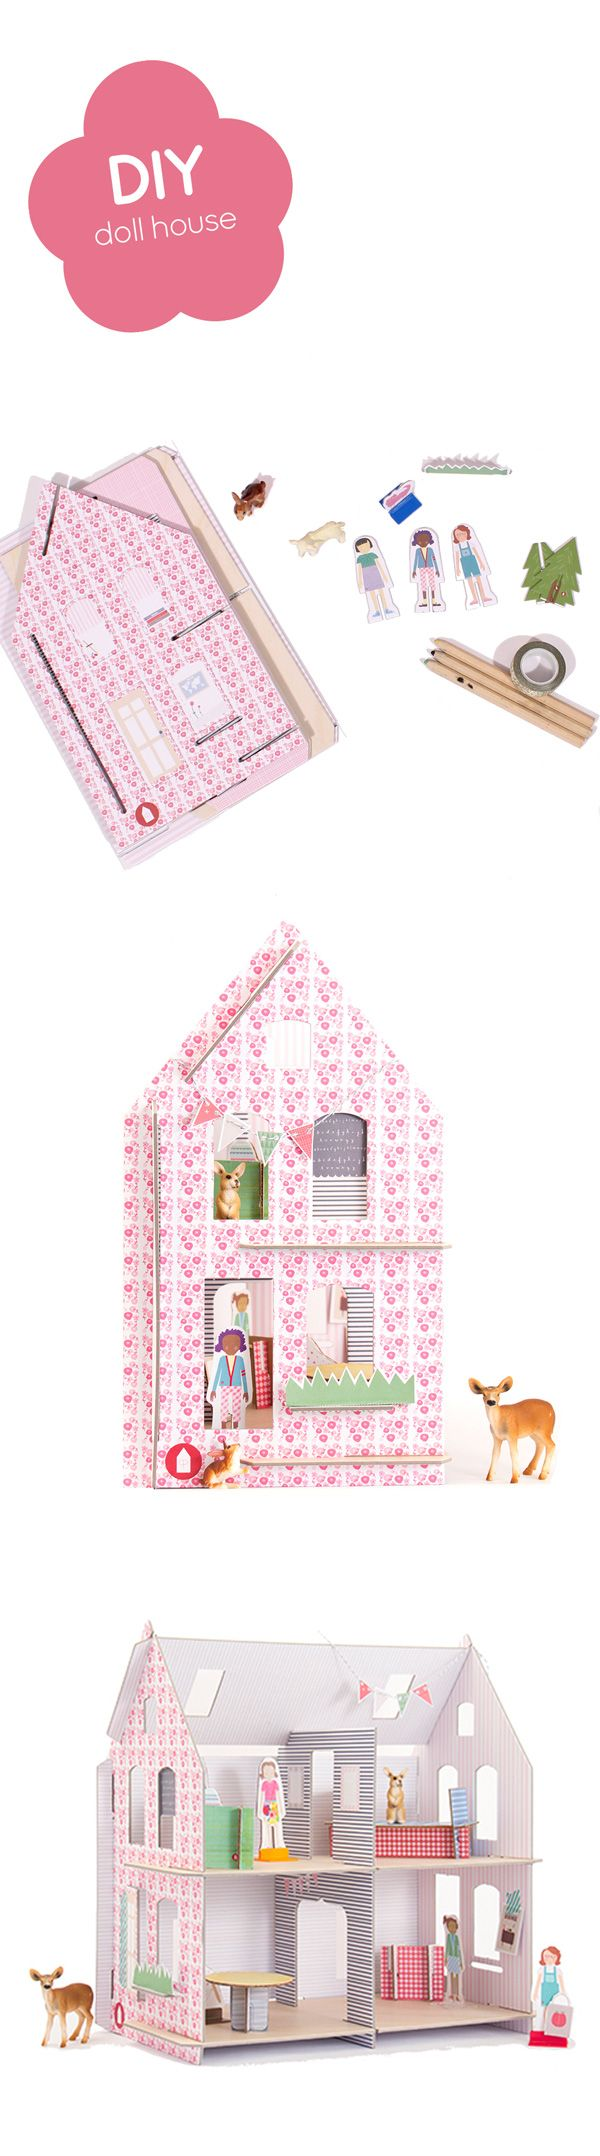 diy dollhouse to make and play with lillehuset